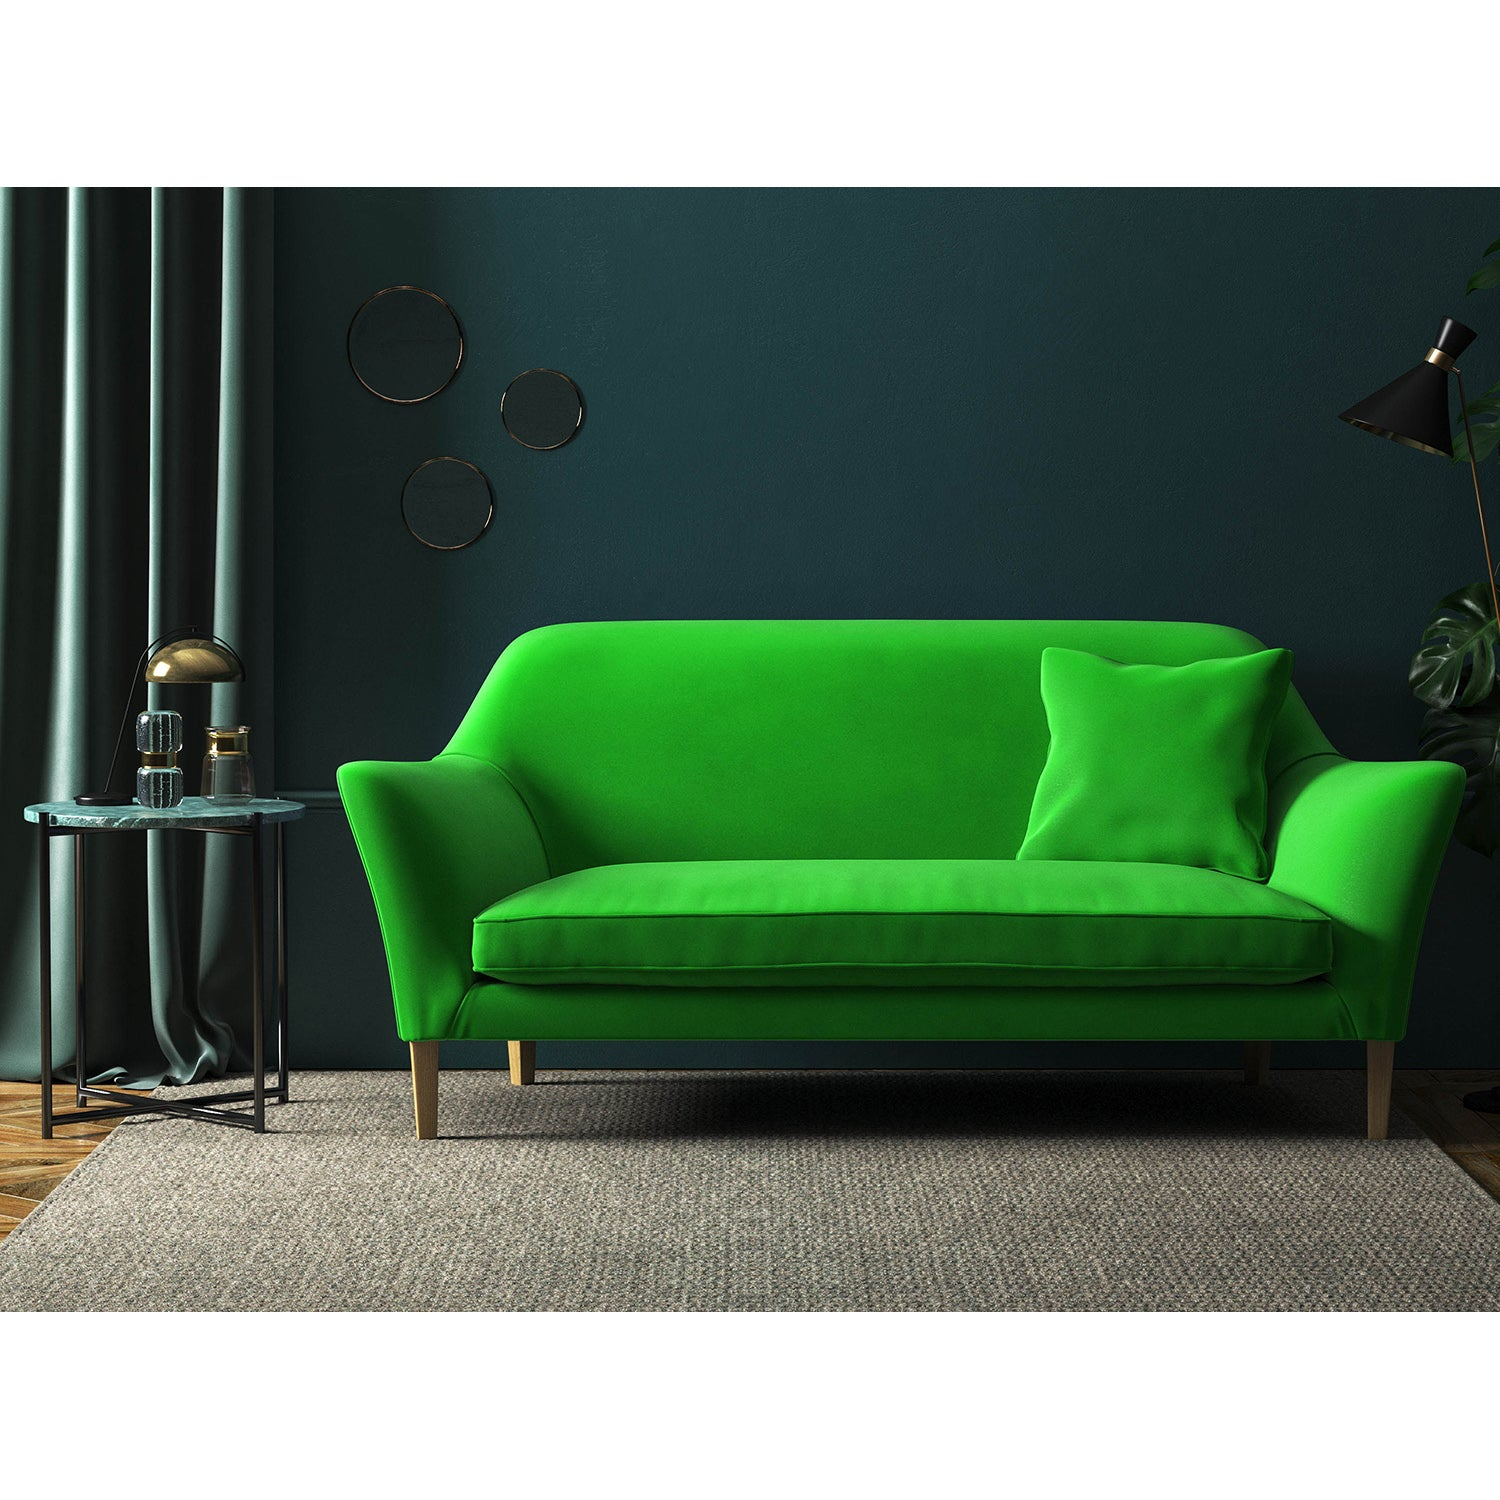 Neon green velvet sofa with a stain resistant finish